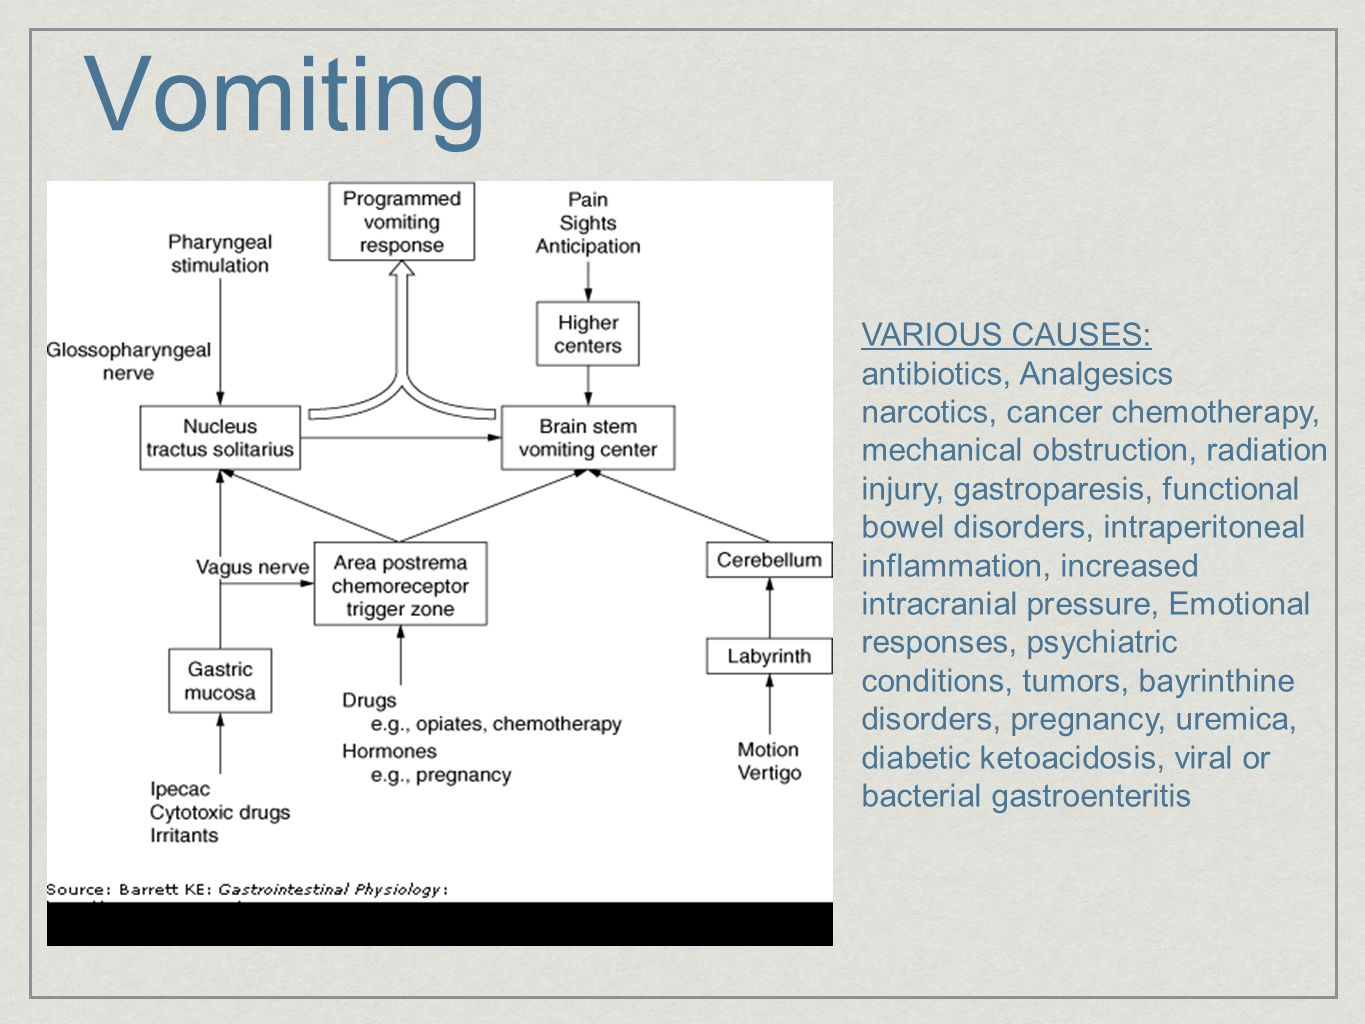 Vomiting VARIOUS CAUSES: antibiotics, Analgesics narcotics, cancer chemotherapy, mechanical obstruction, radiation injury, gastroparesis, functional bowel disorders, intraperitoneal inflammation, increased intracranial pressure, Emotional responses, psychiatric conditions, tumors, bayrinthine disorders, pregnancy, uremica, diabetic ketoacidosis, viral or bacterial gastroenteritis